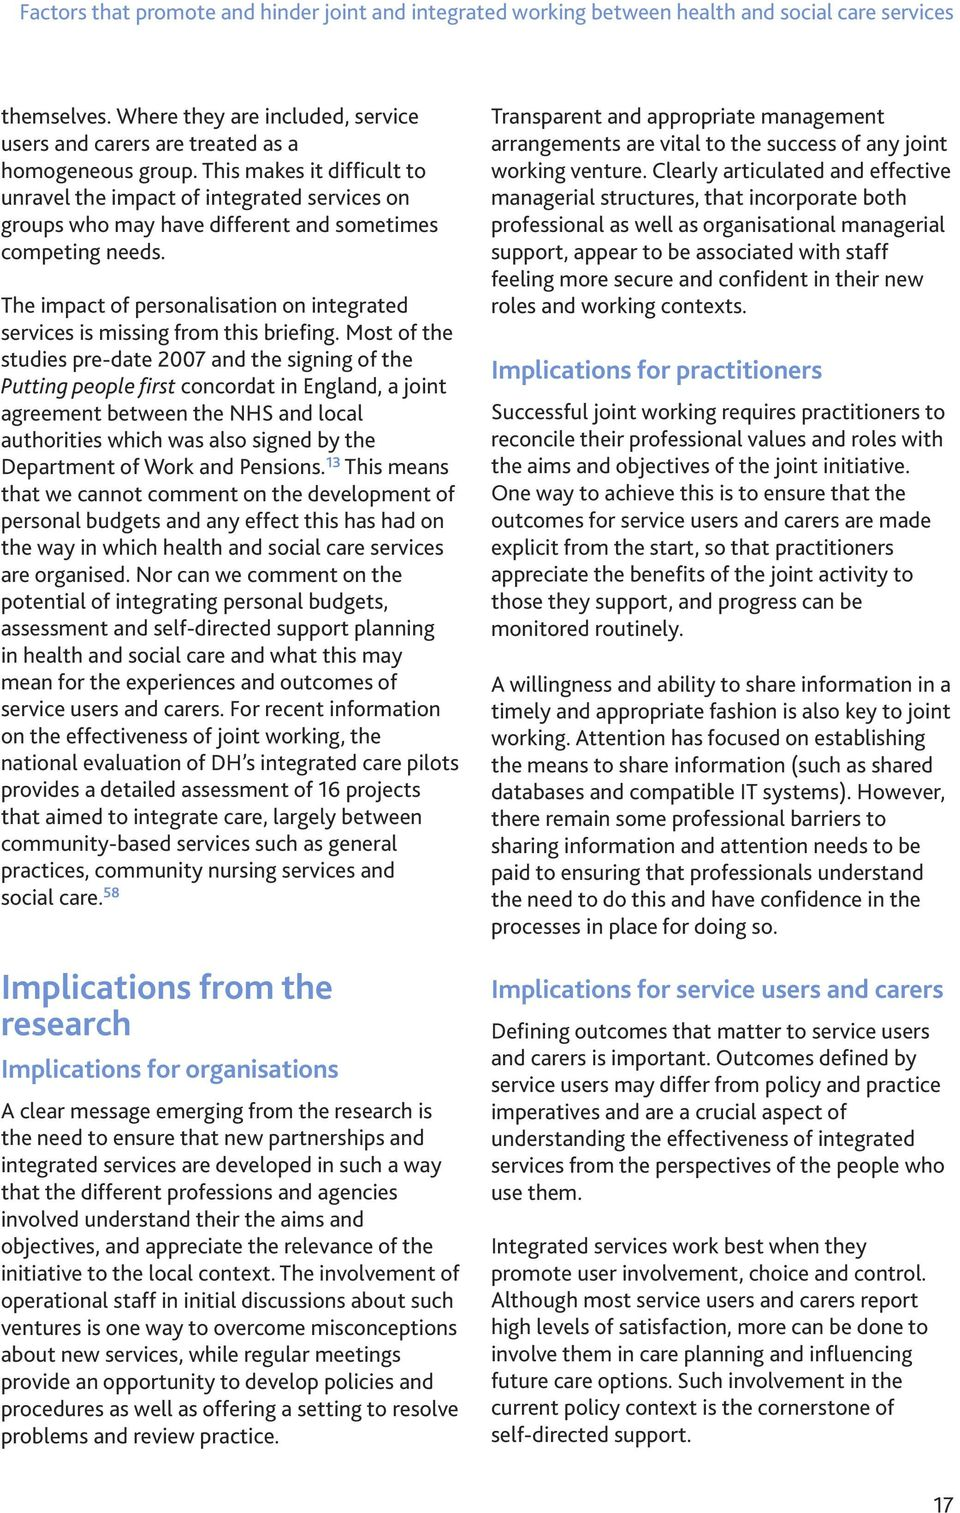 The impact of personalisation on integrated services is missing from this briefing.